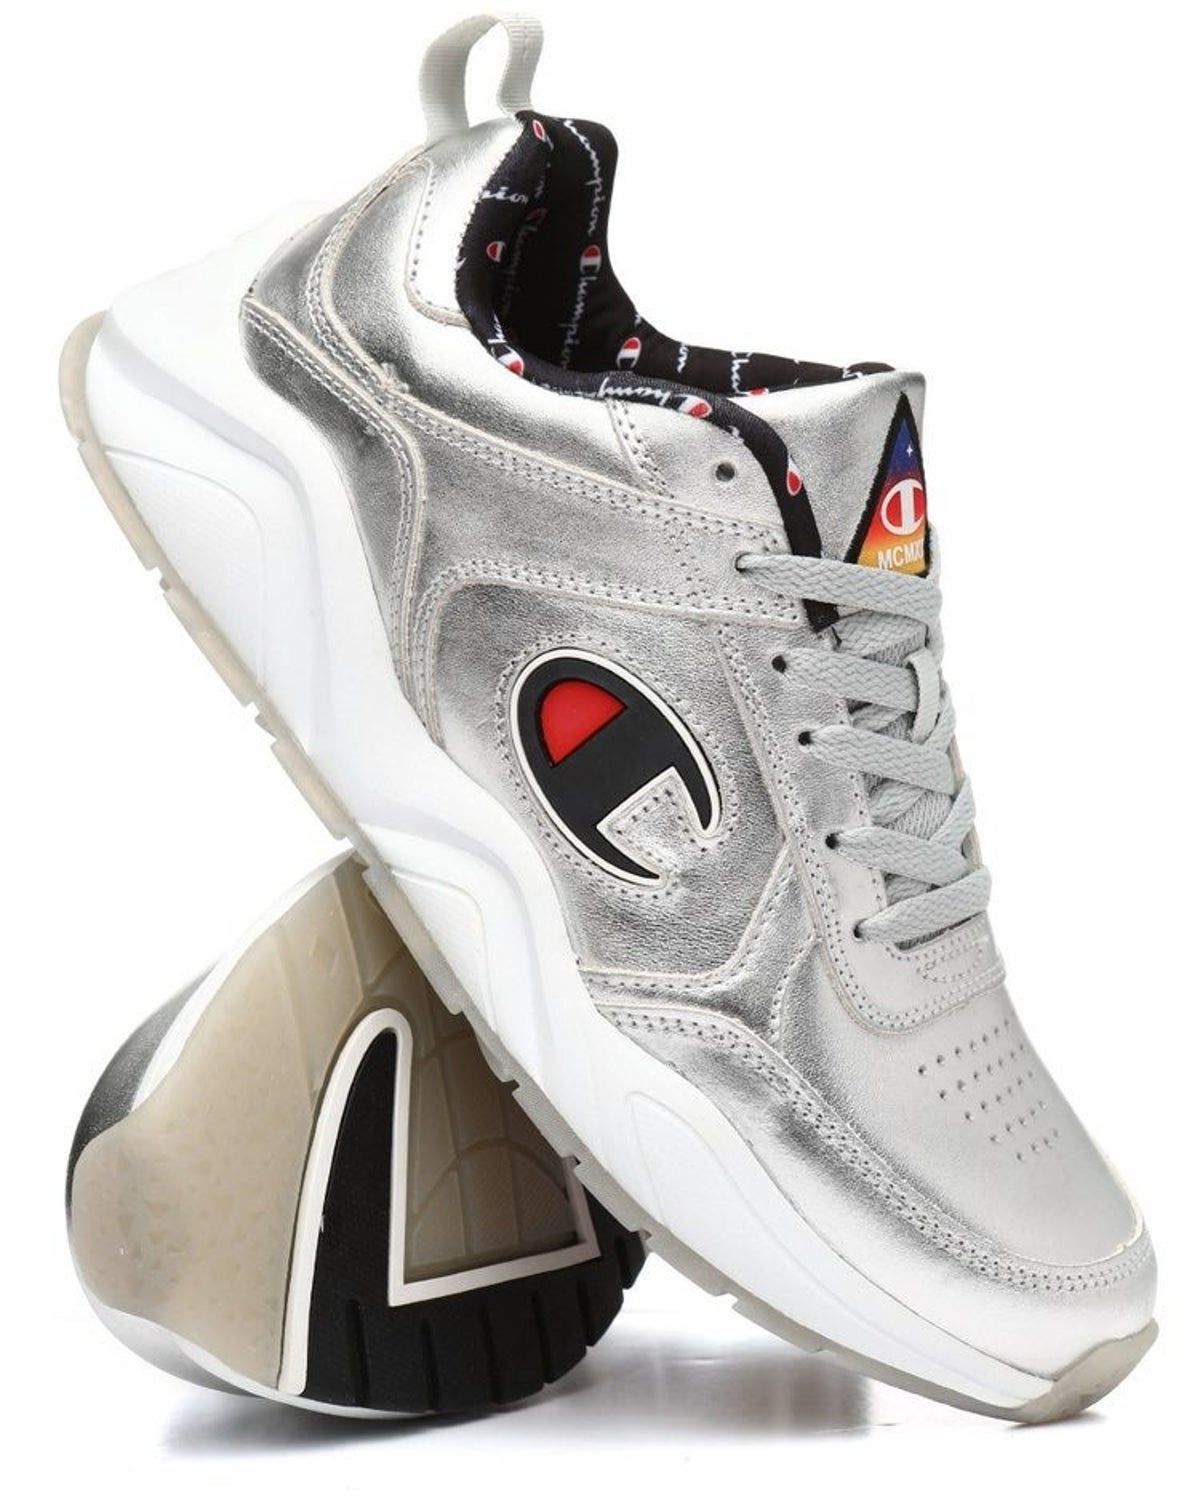 Sz 13 champion sneakers silver in 2020 Champion sneakers